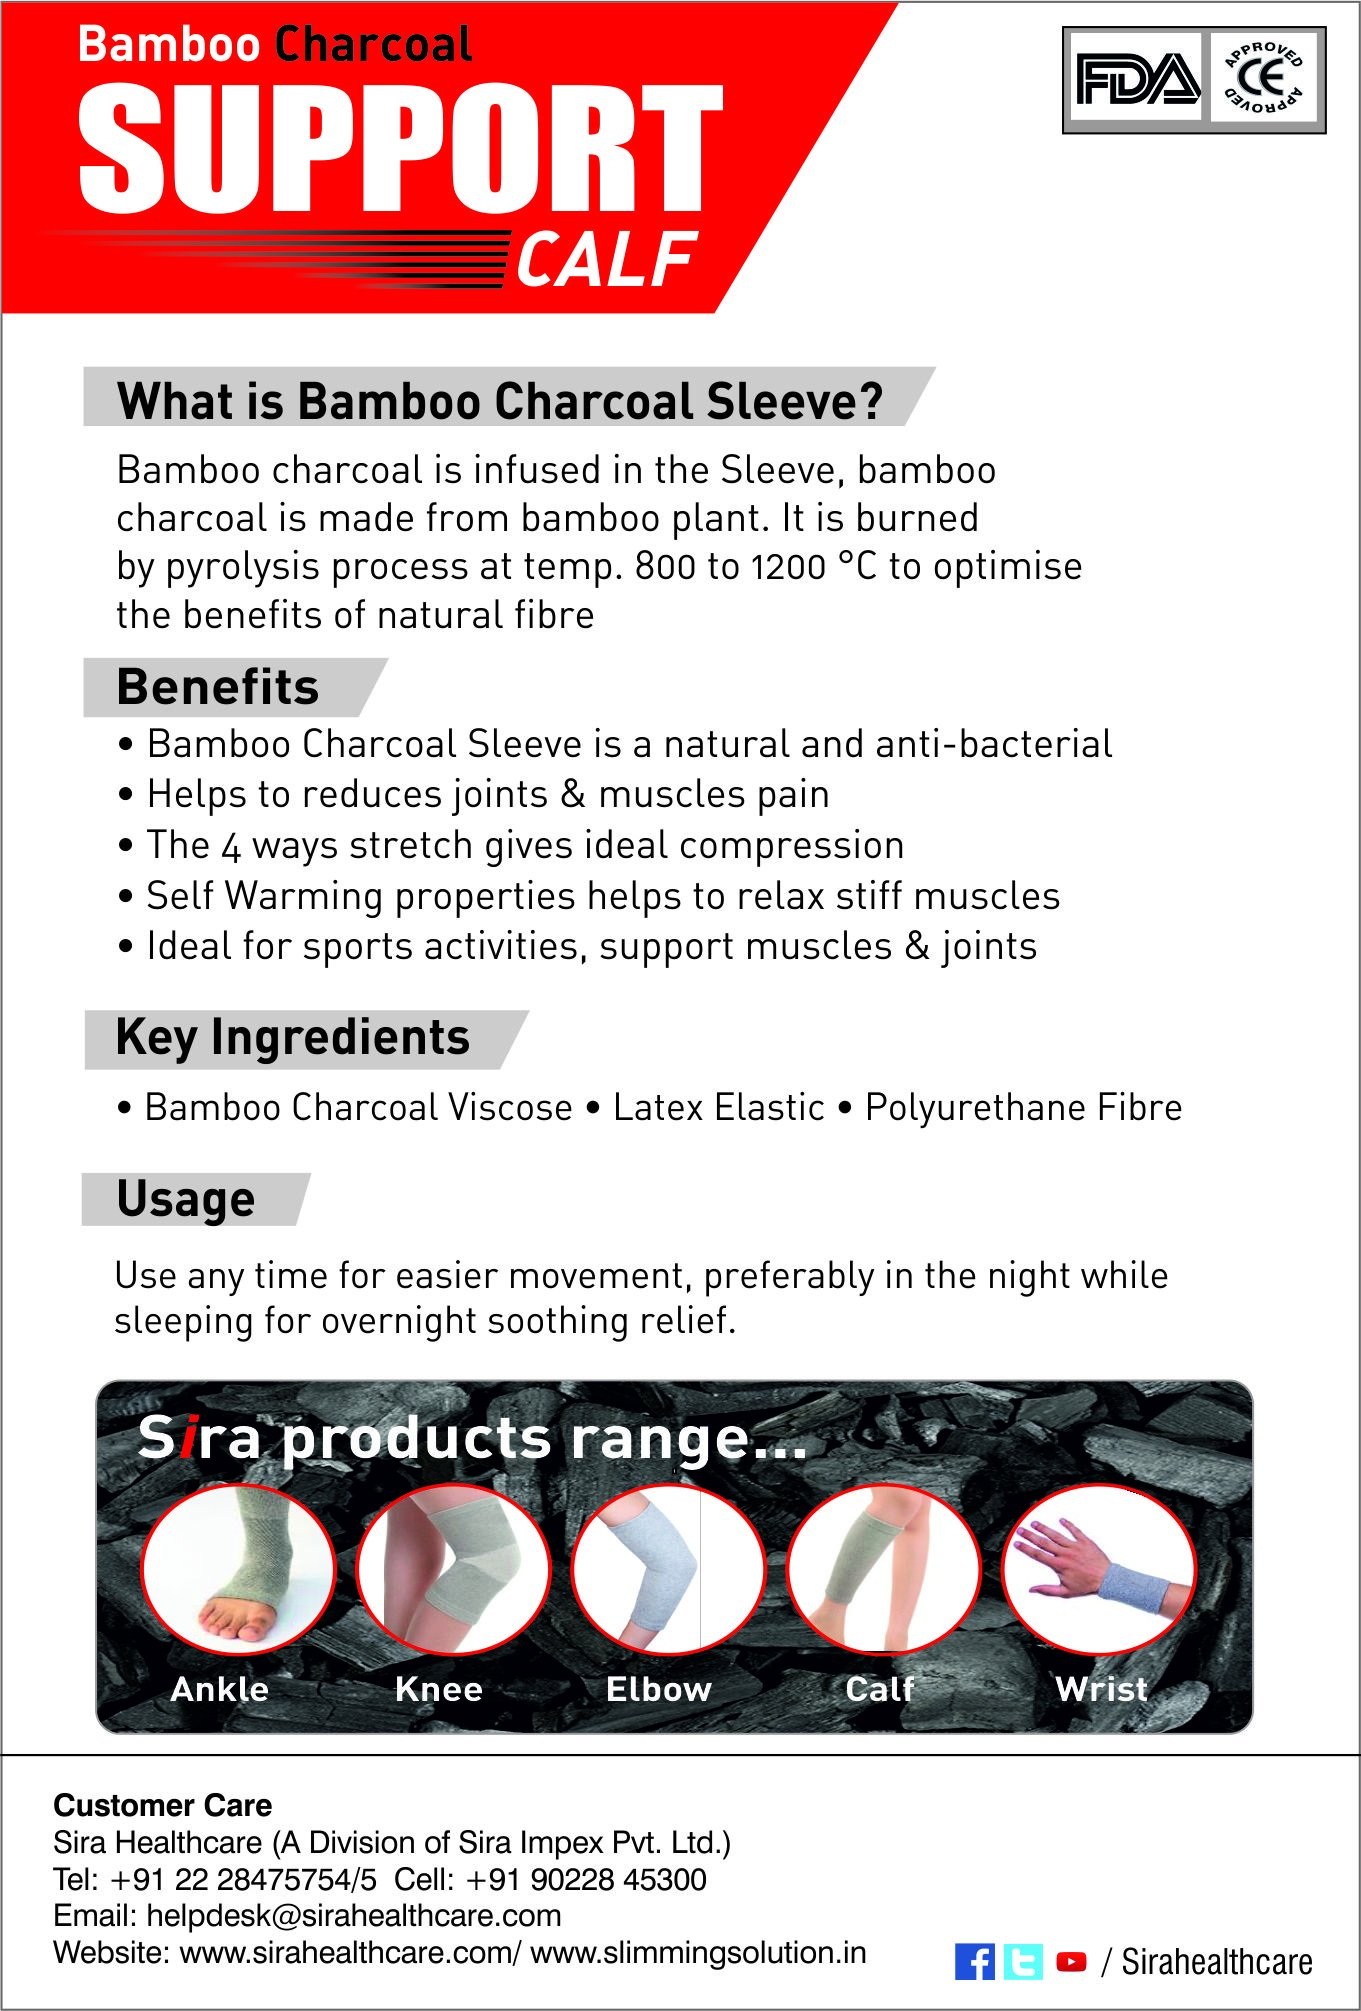 Sira Bamboo Charcoal Calf Sleeve,Outdoor Sports, Protector,Running,Calf Guard Shin Splints Sleeves,Great for Running,Baseball,Walking,Cycling,Training,Travel- Boosts Circulation - Aids Faster Recovery by Sira JointComfo